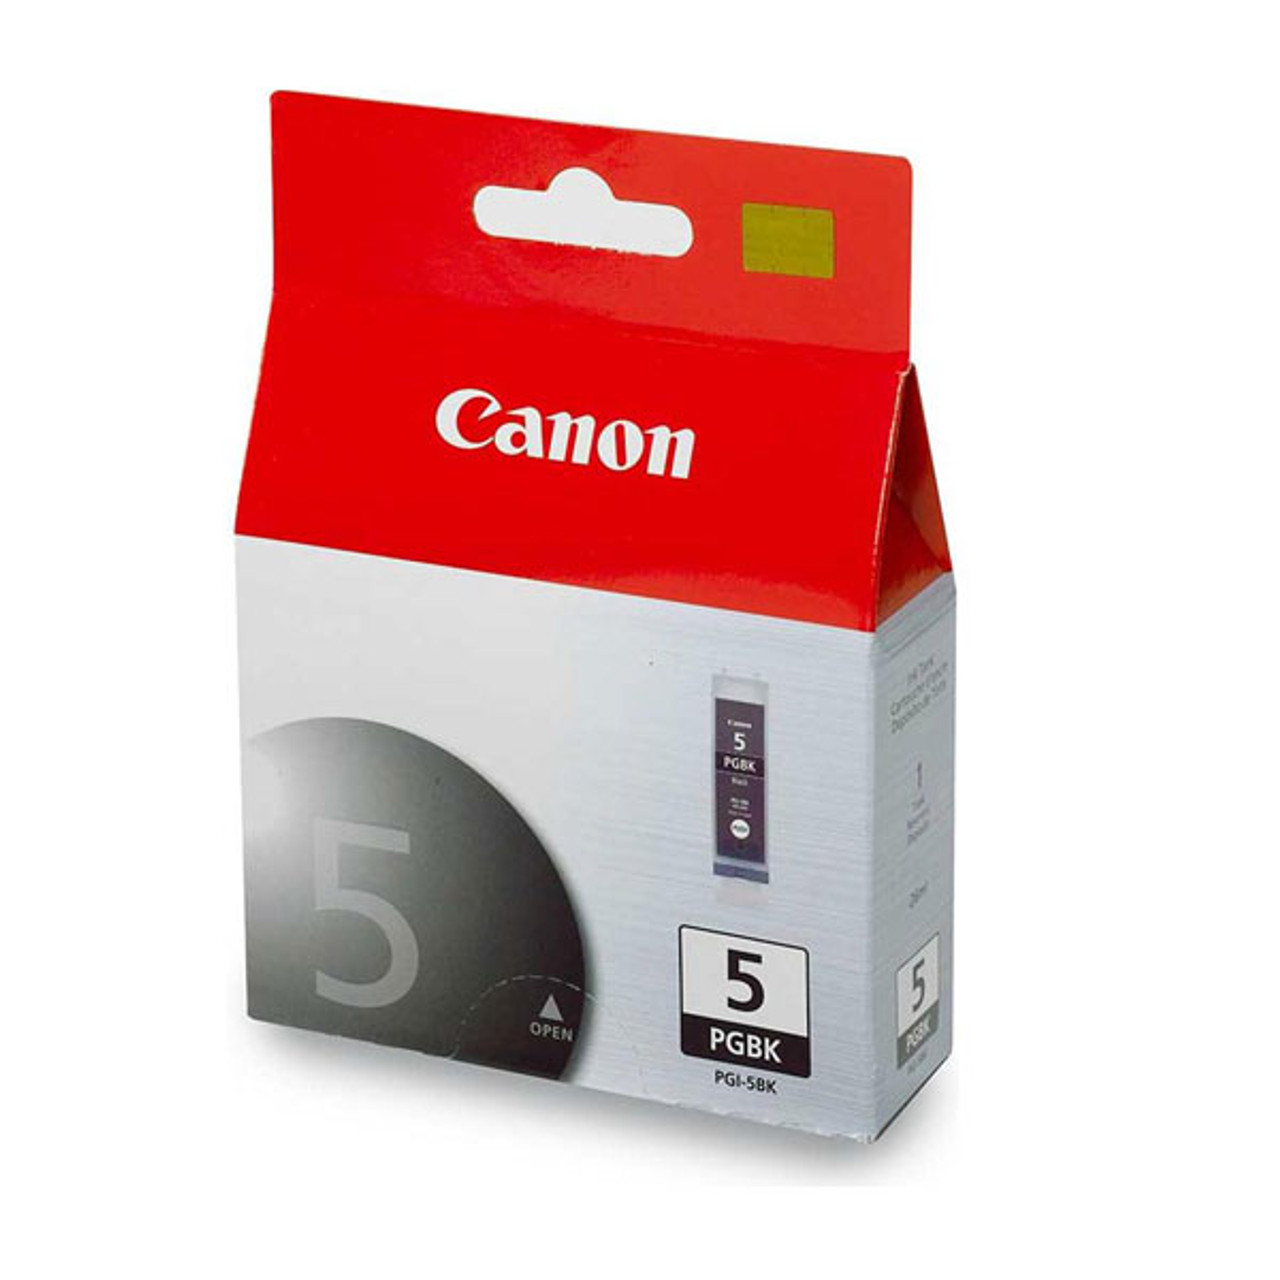 Image for Canon PGI5 Black Ink Cart 360 pages Black CX Computer Superstore